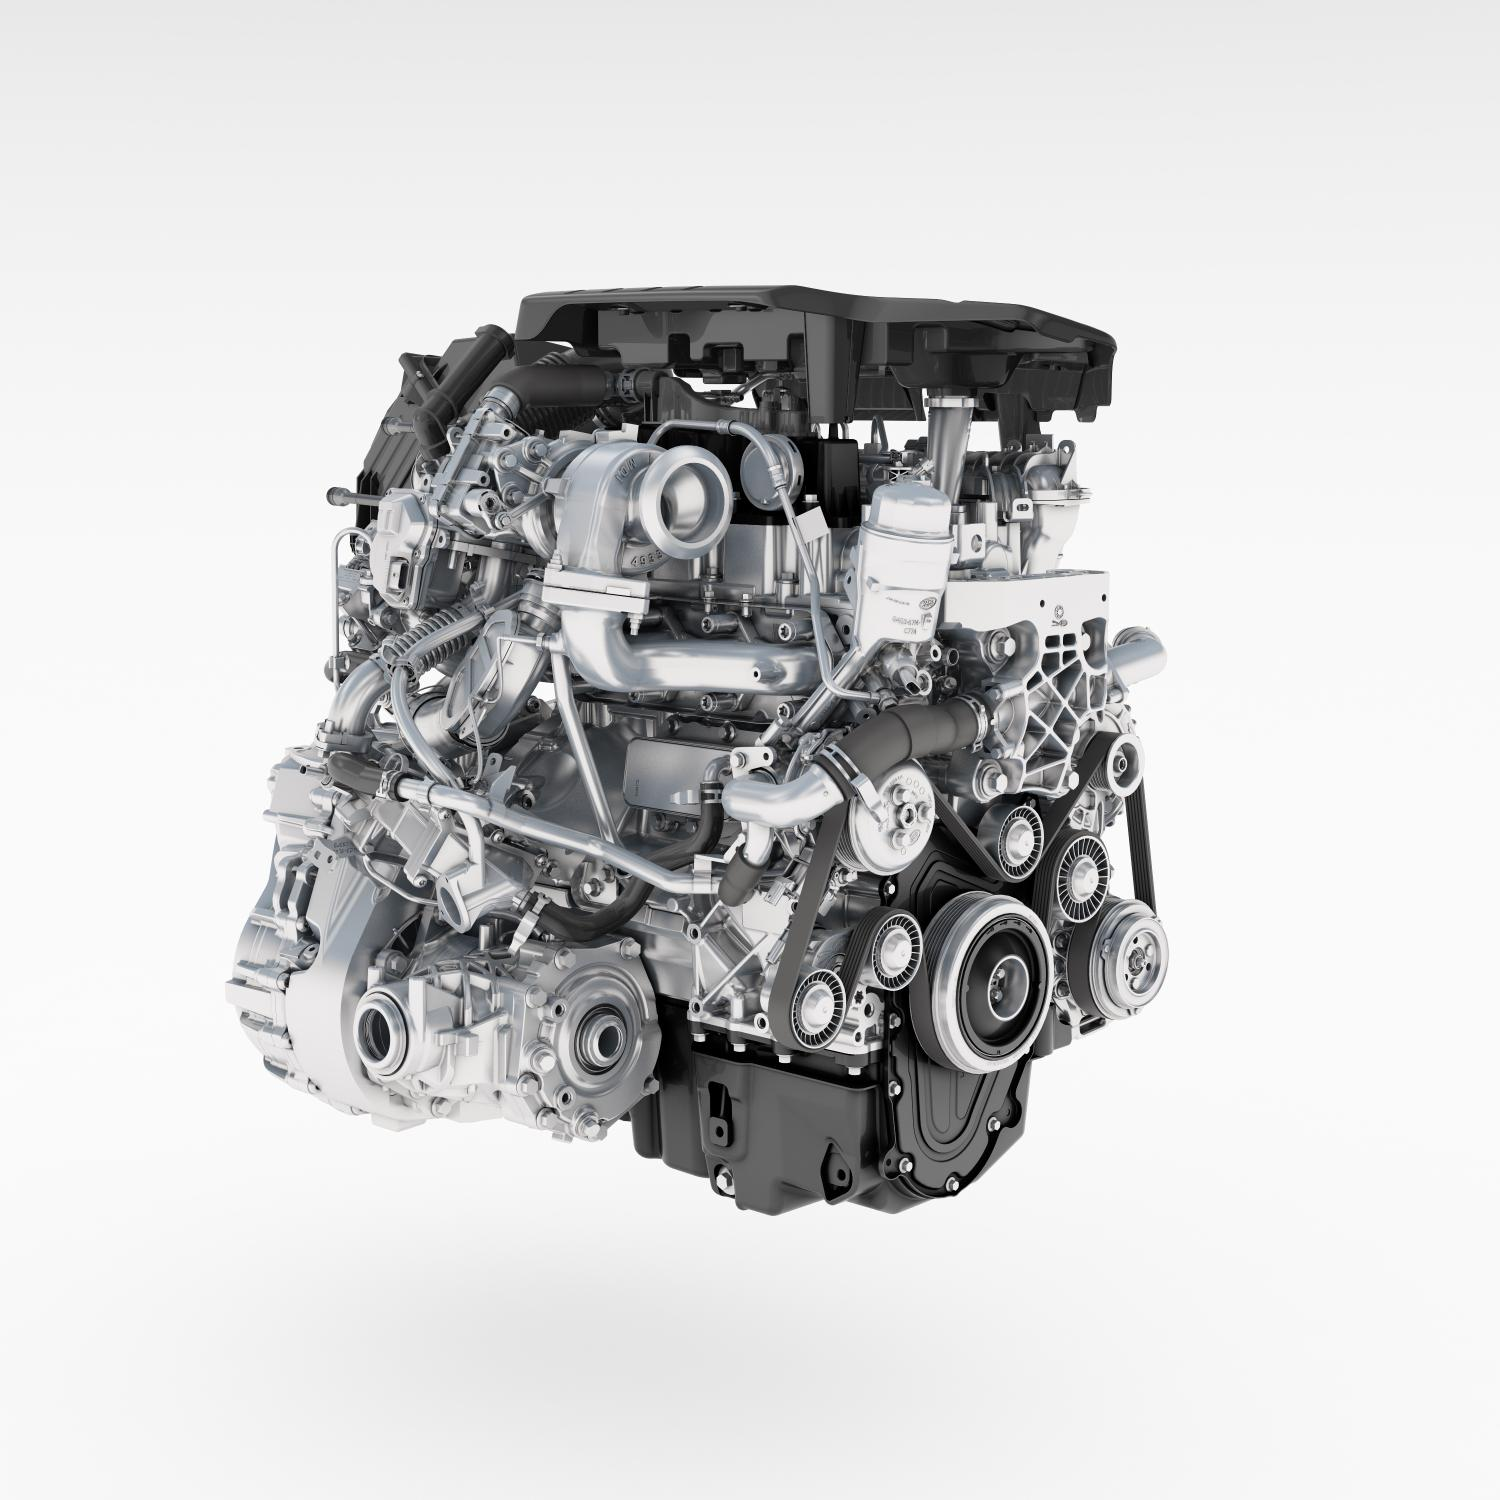 Land Rover Release New Fuel-efficient Ingenium Diesel Engine